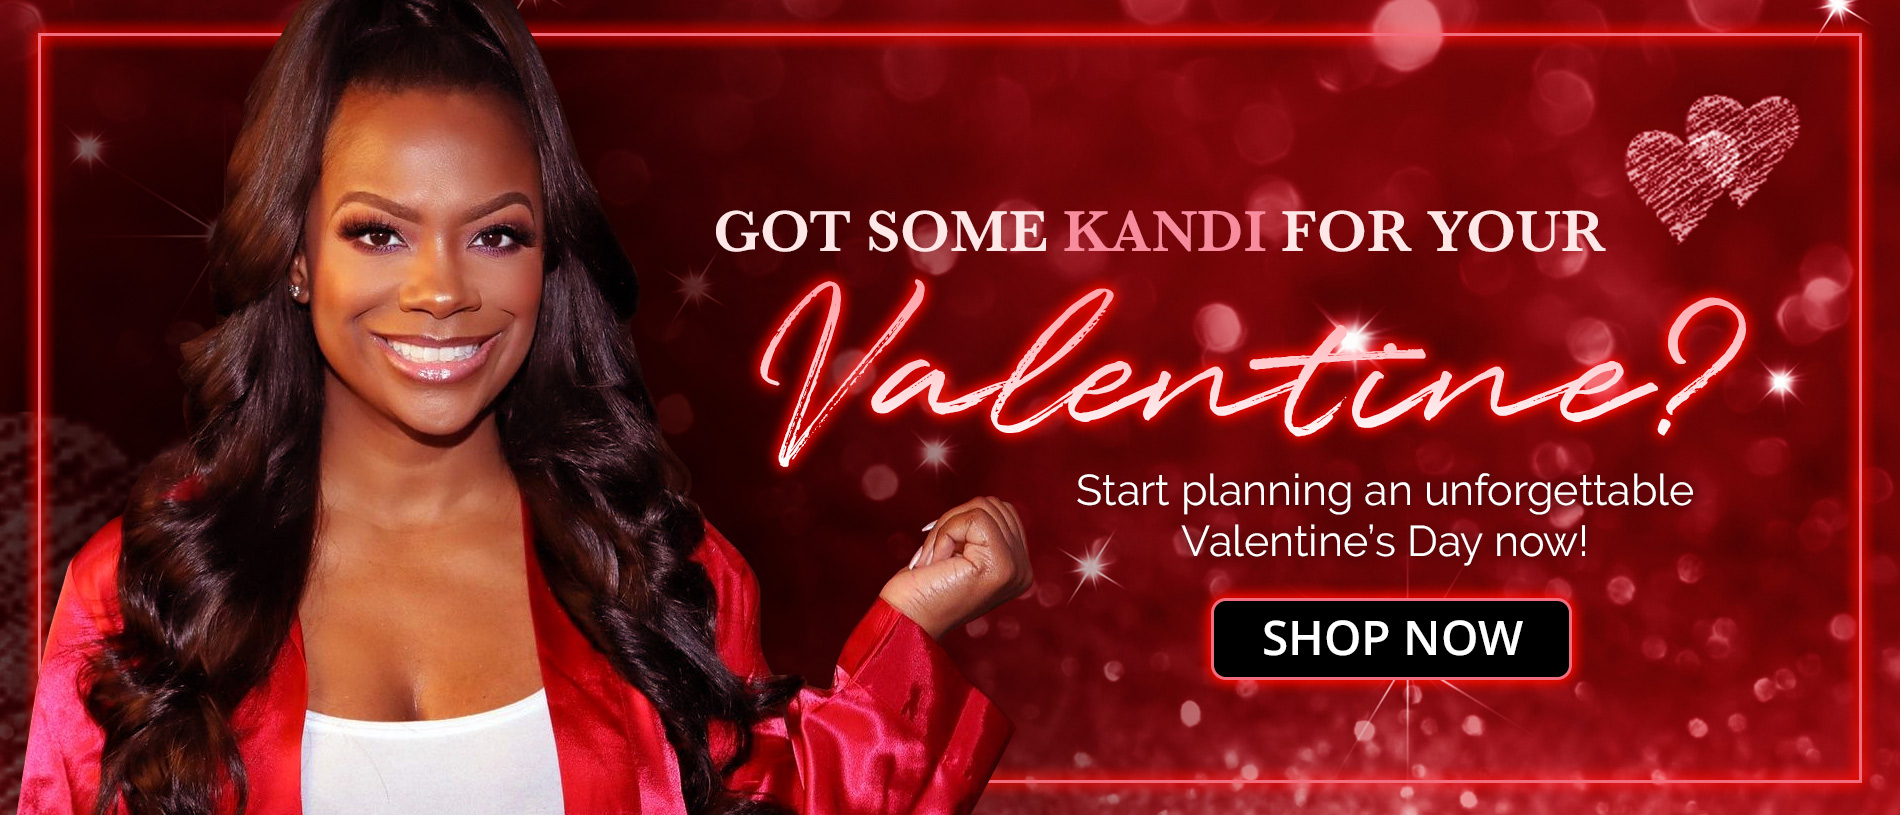 Got some Kandi for your Valentine? Shop Now